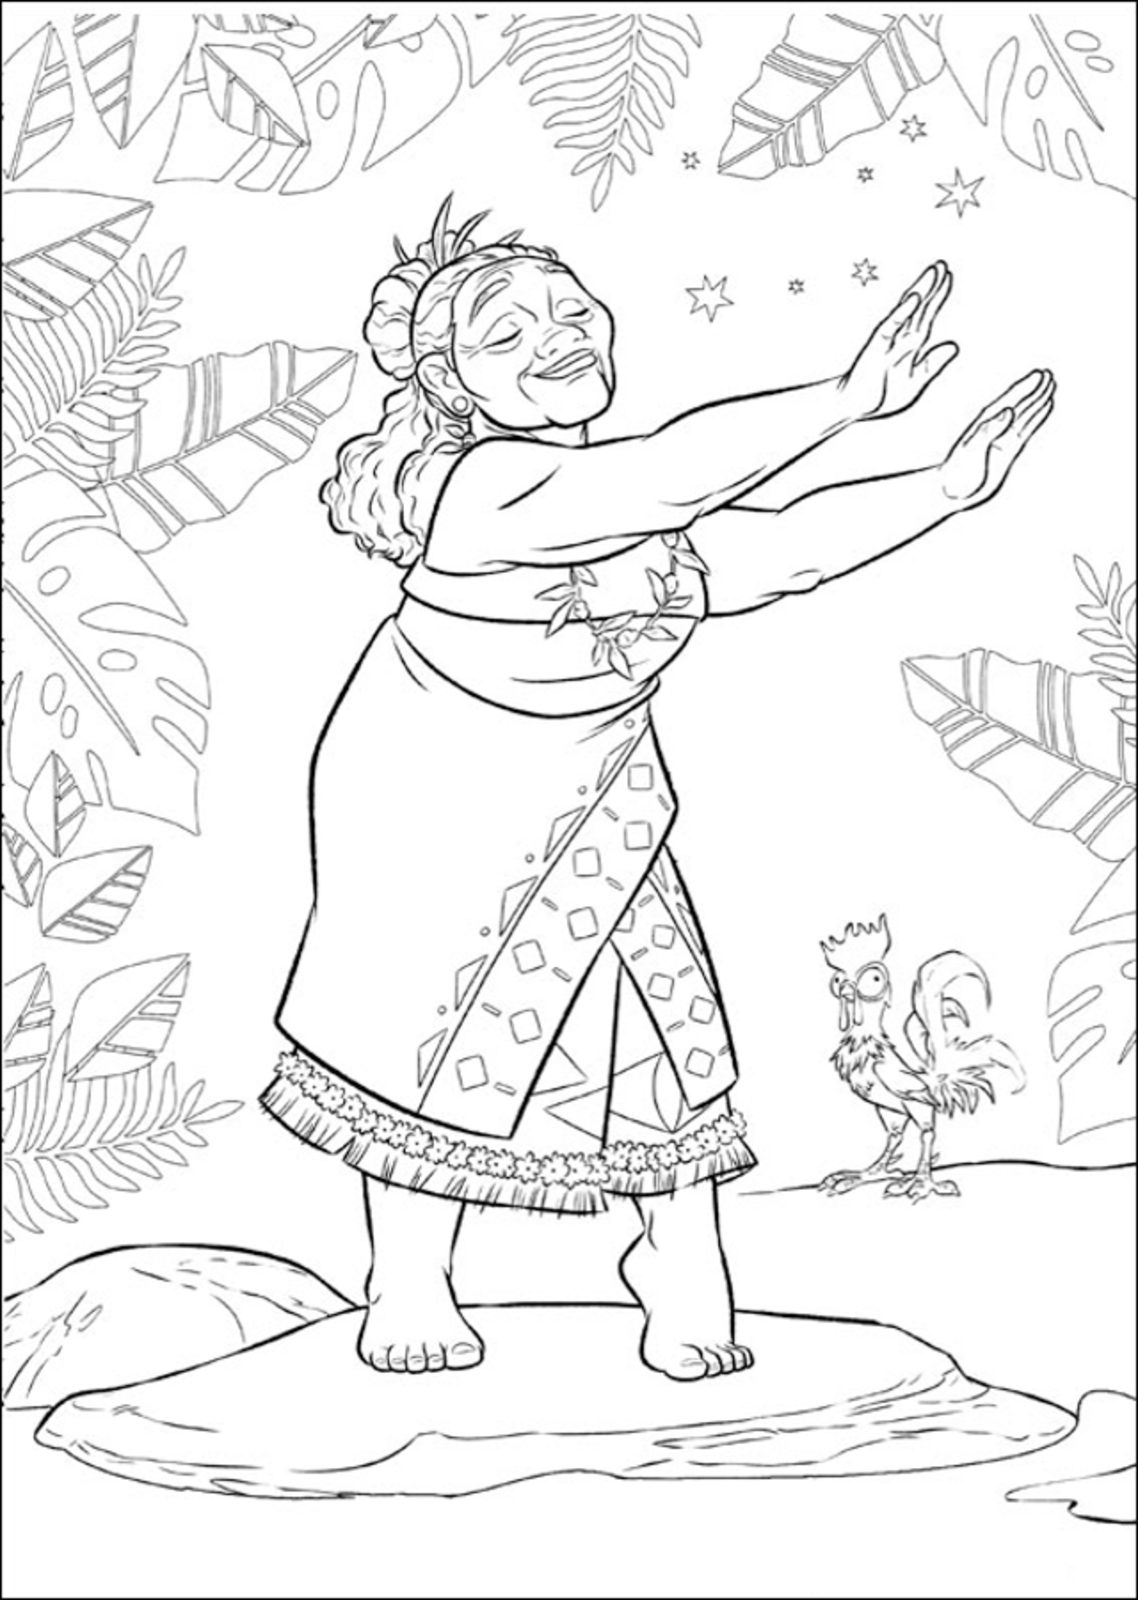 call of duty coloring pages - dibujos de vaiana